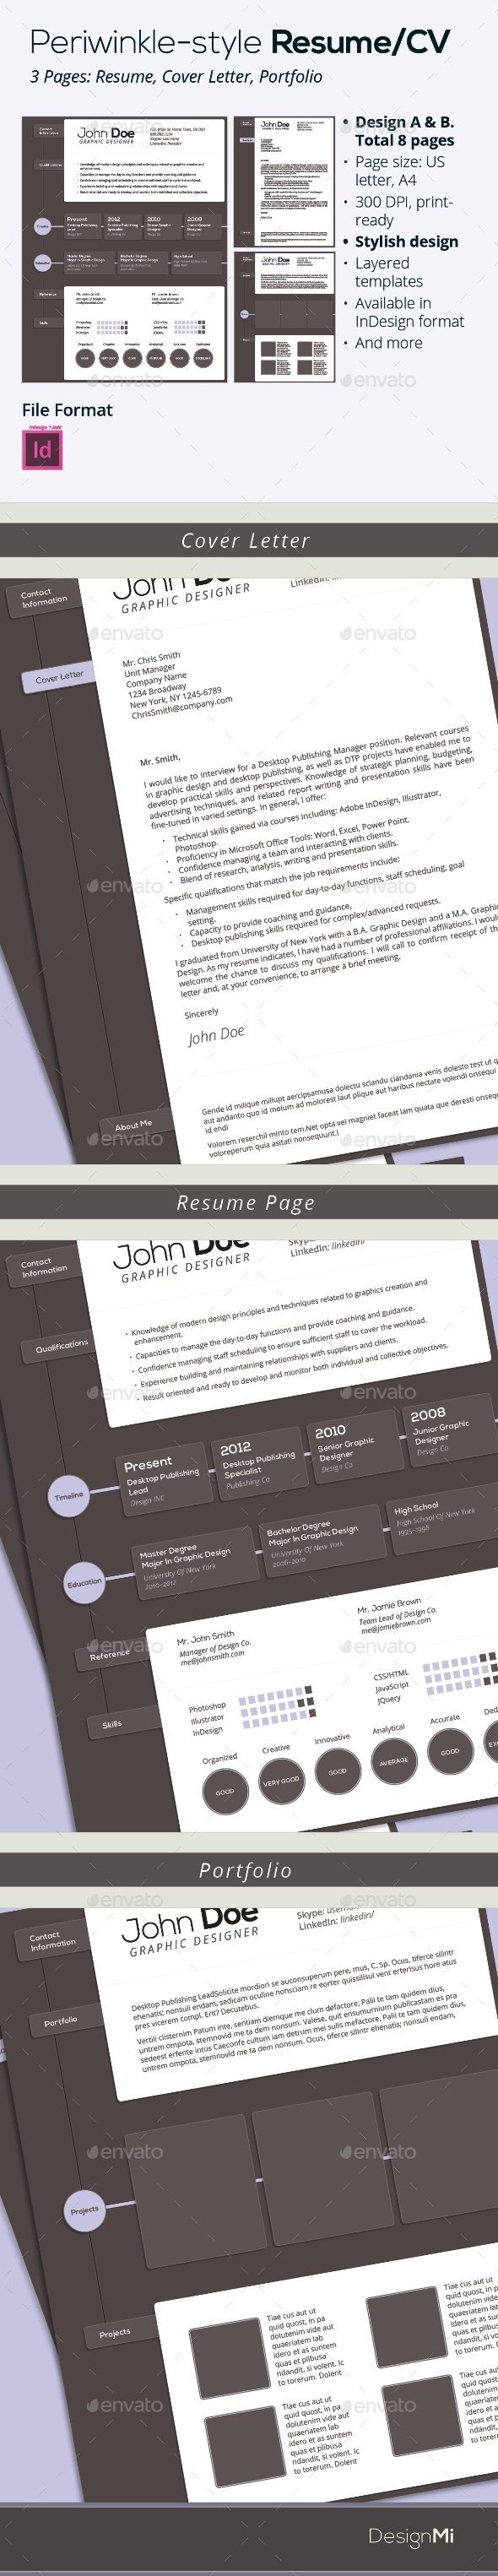 GraphicRiver Periwinkle Style Resume CV 9225504